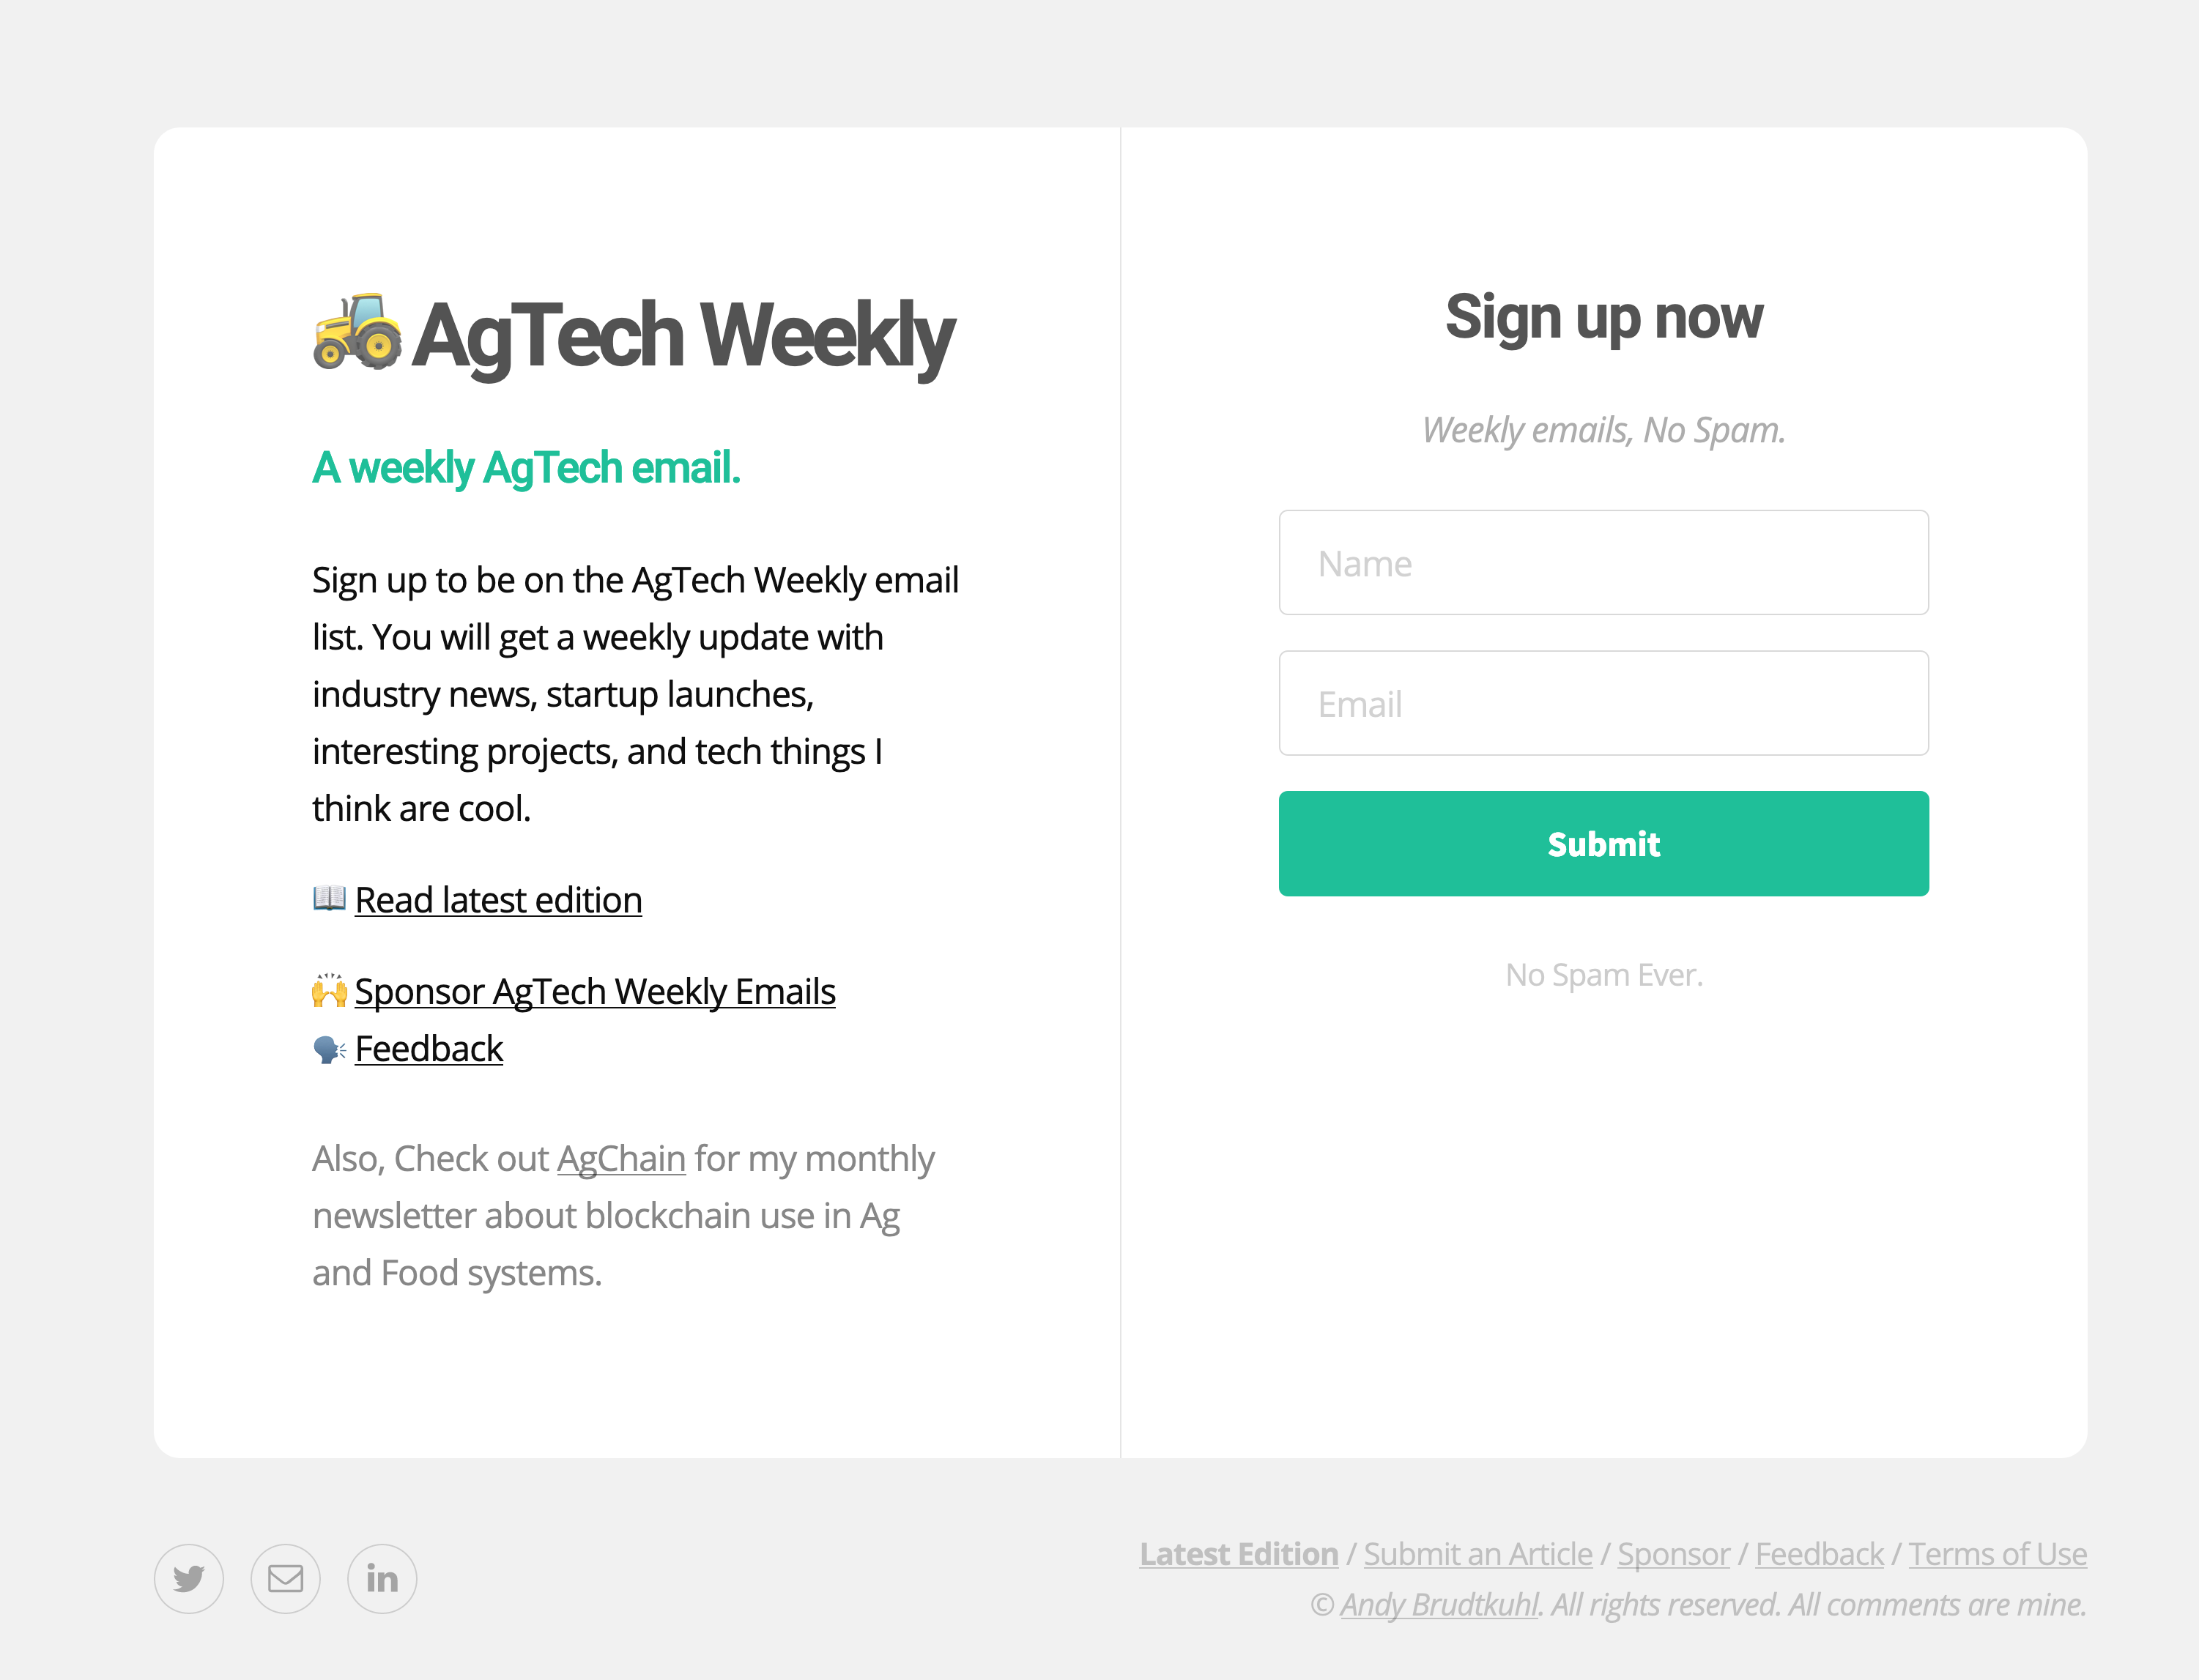 https://agtech.email screenshot